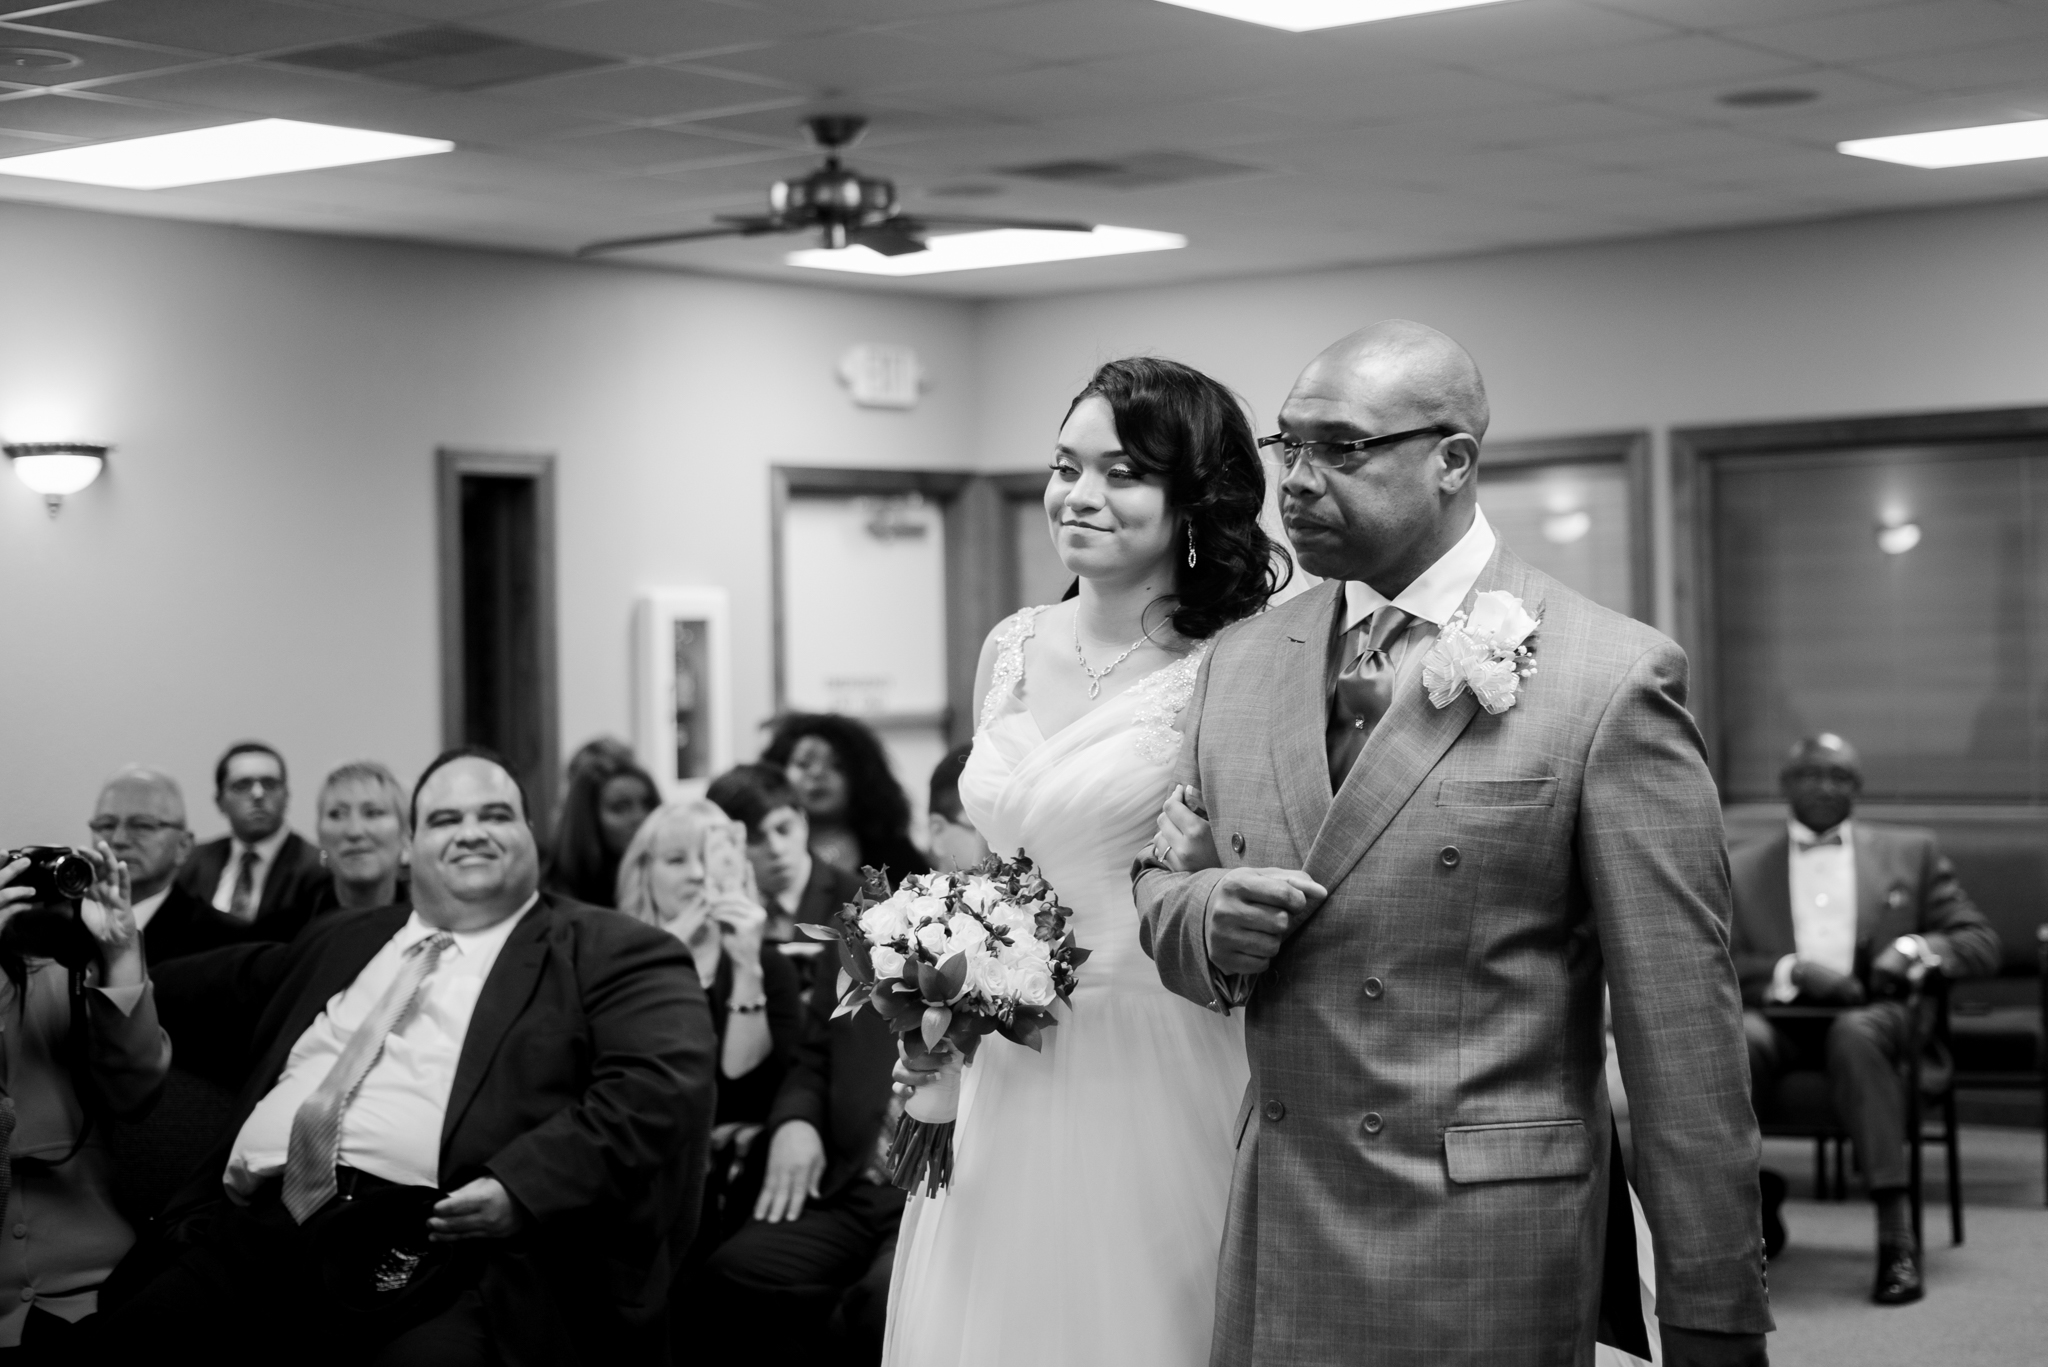 gibsonville-wedding-photography-022.jpg